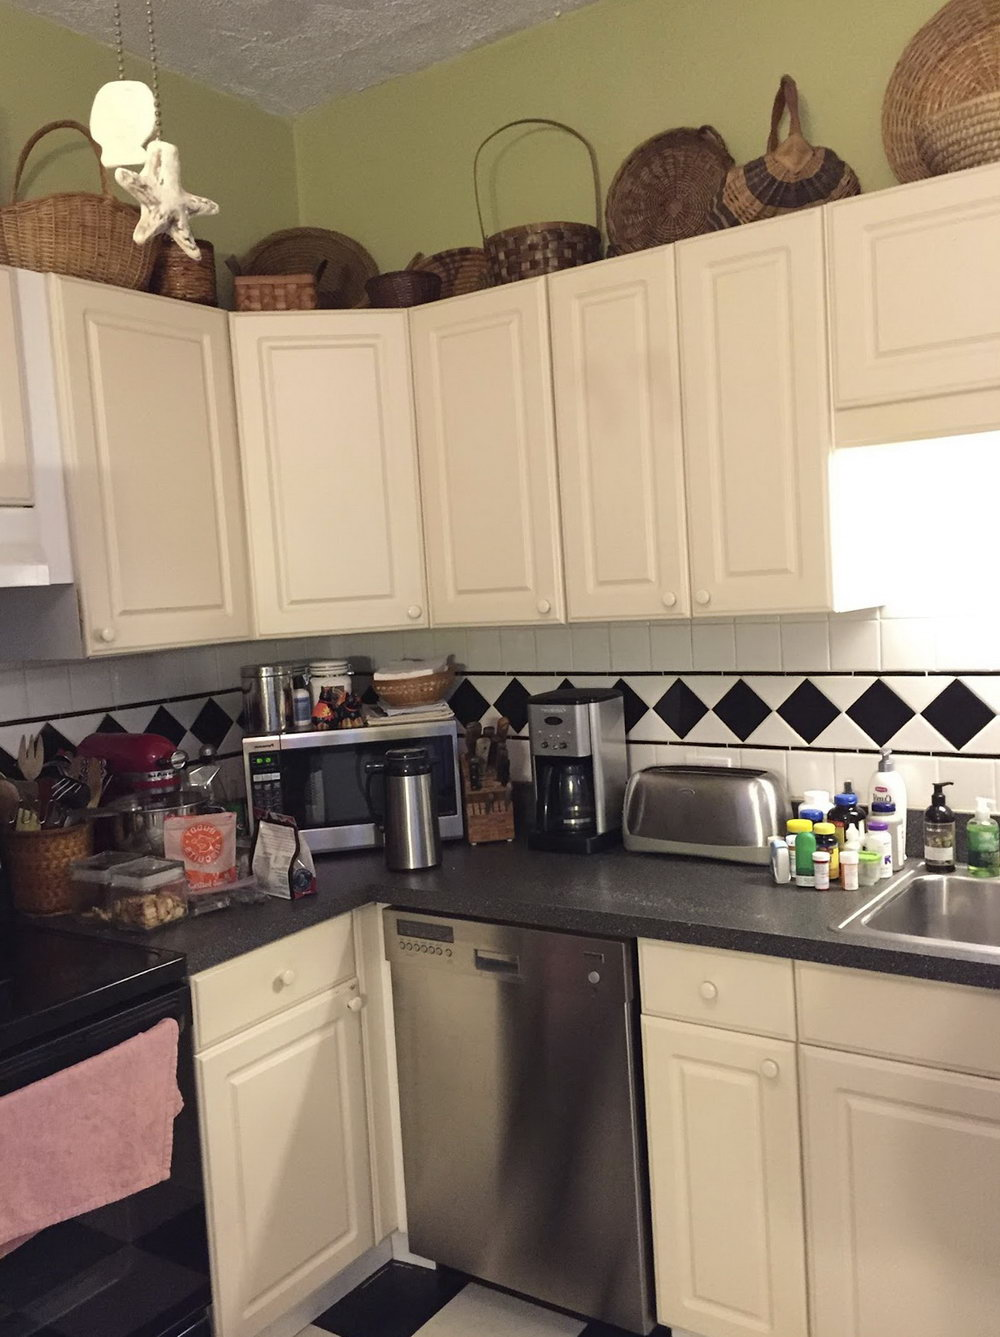 Can You Paint Laminate Kitchen Cabinets